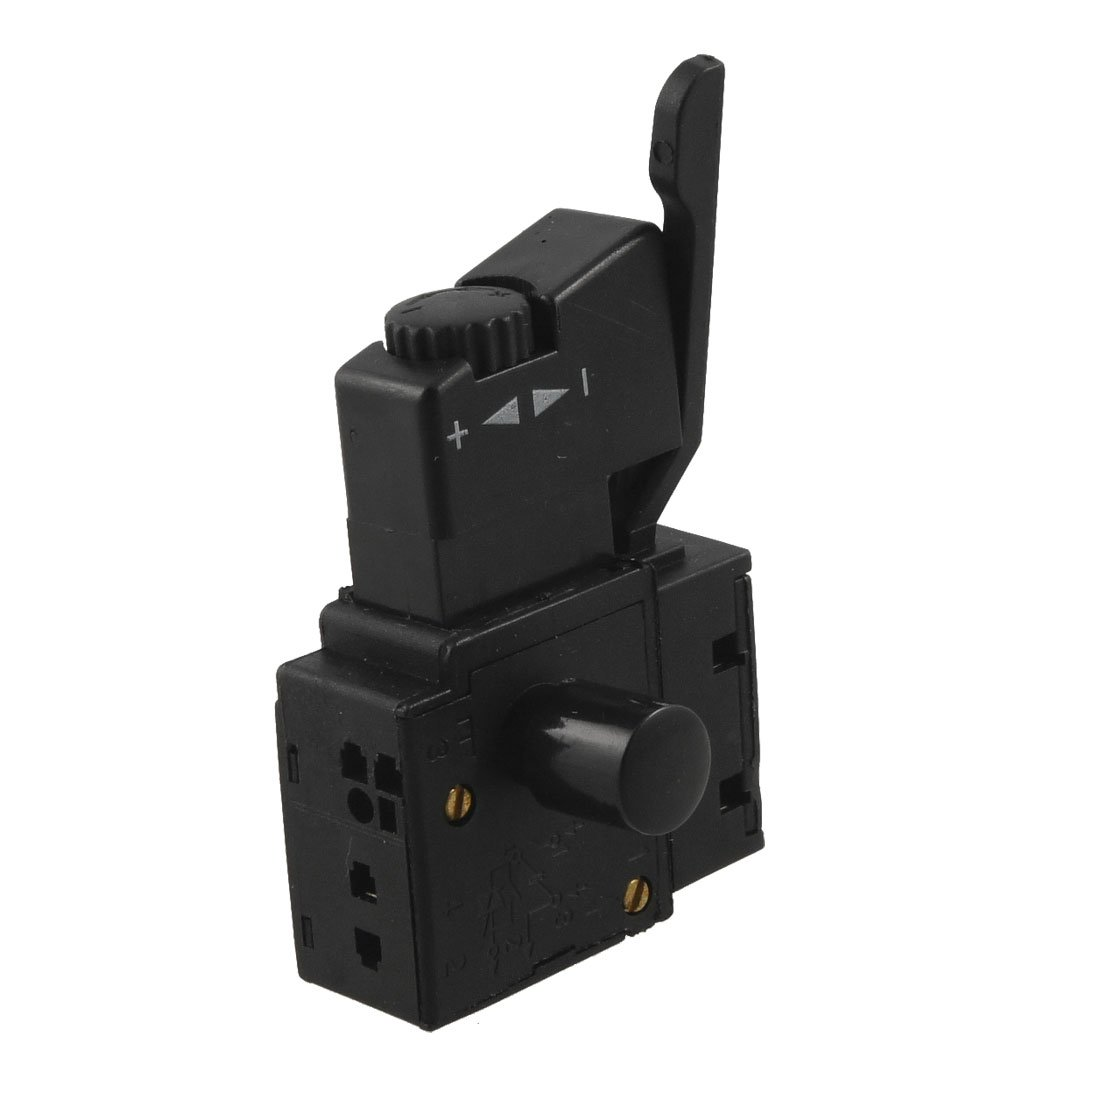 CNIM Hot <font><b>FA2</b></font>-<font><b>4</b></font>/<font><b>1BEK</b></font> SPST Lock on Power Tool Trigger Button Switch Black image